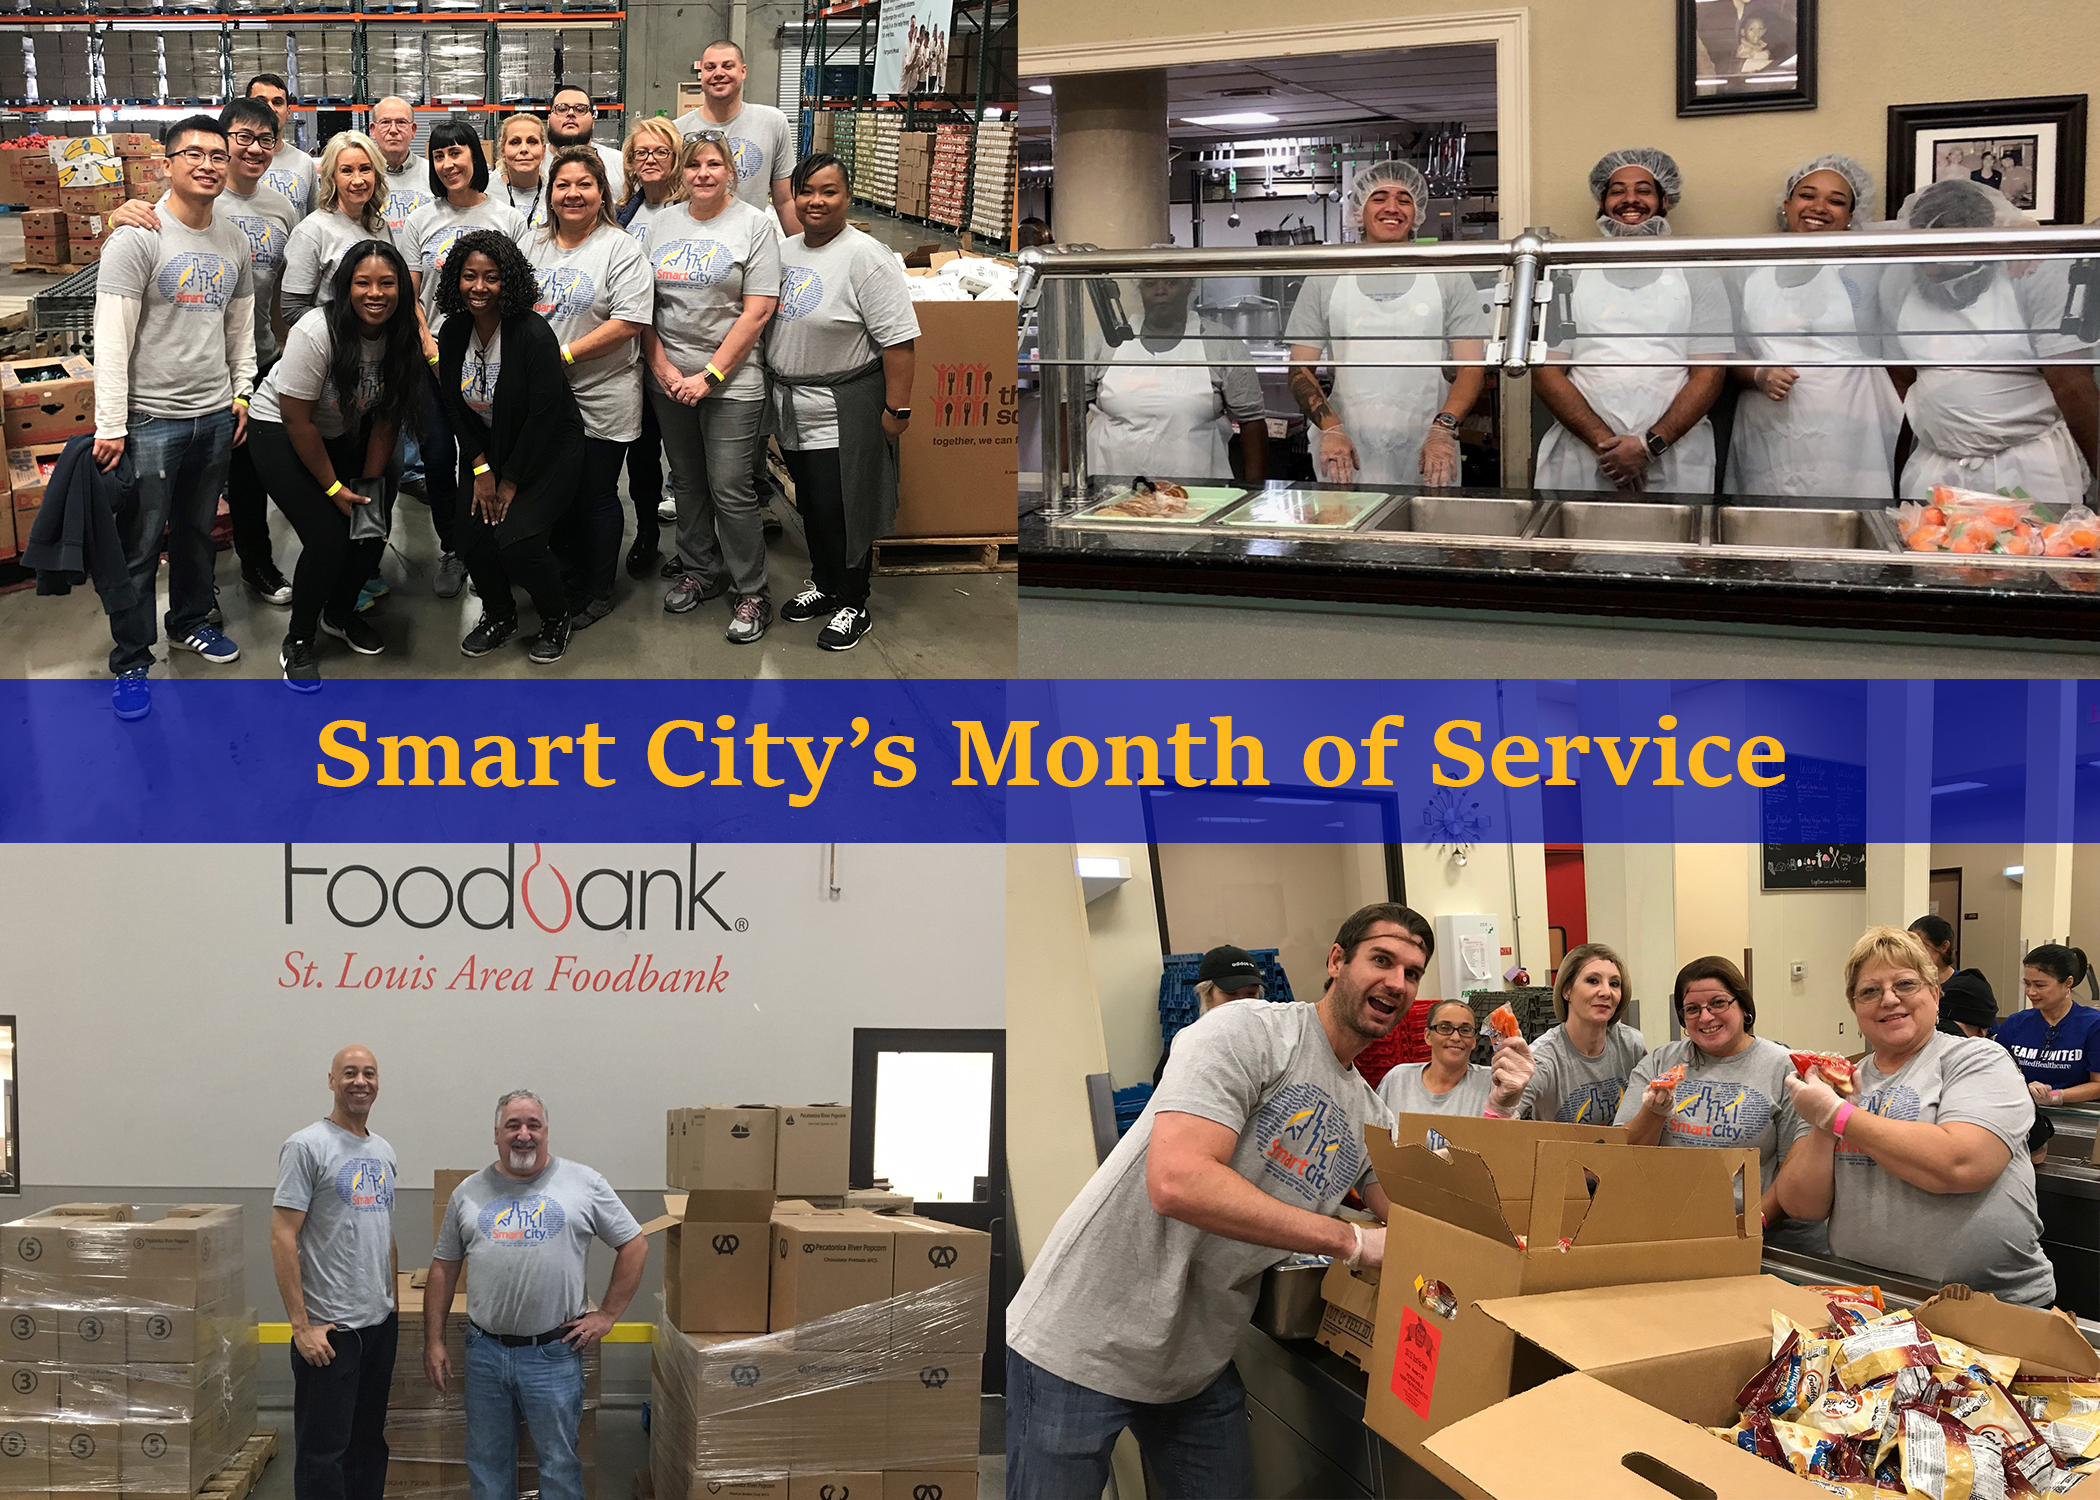 Charity work by Smart City Networks